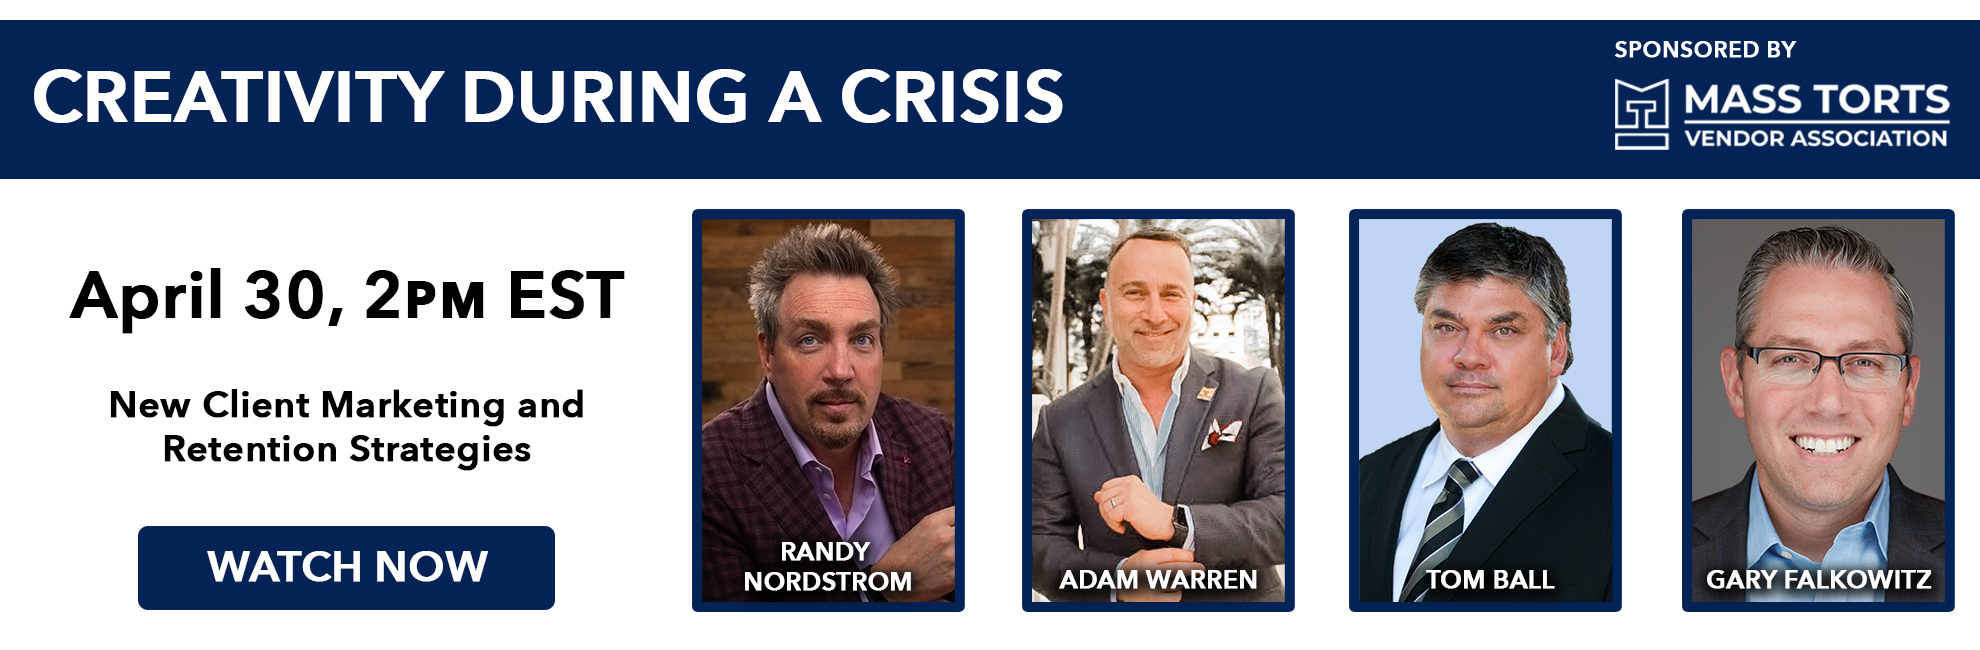 April 30th, 2020 - Creativity During a Crisis Webinar